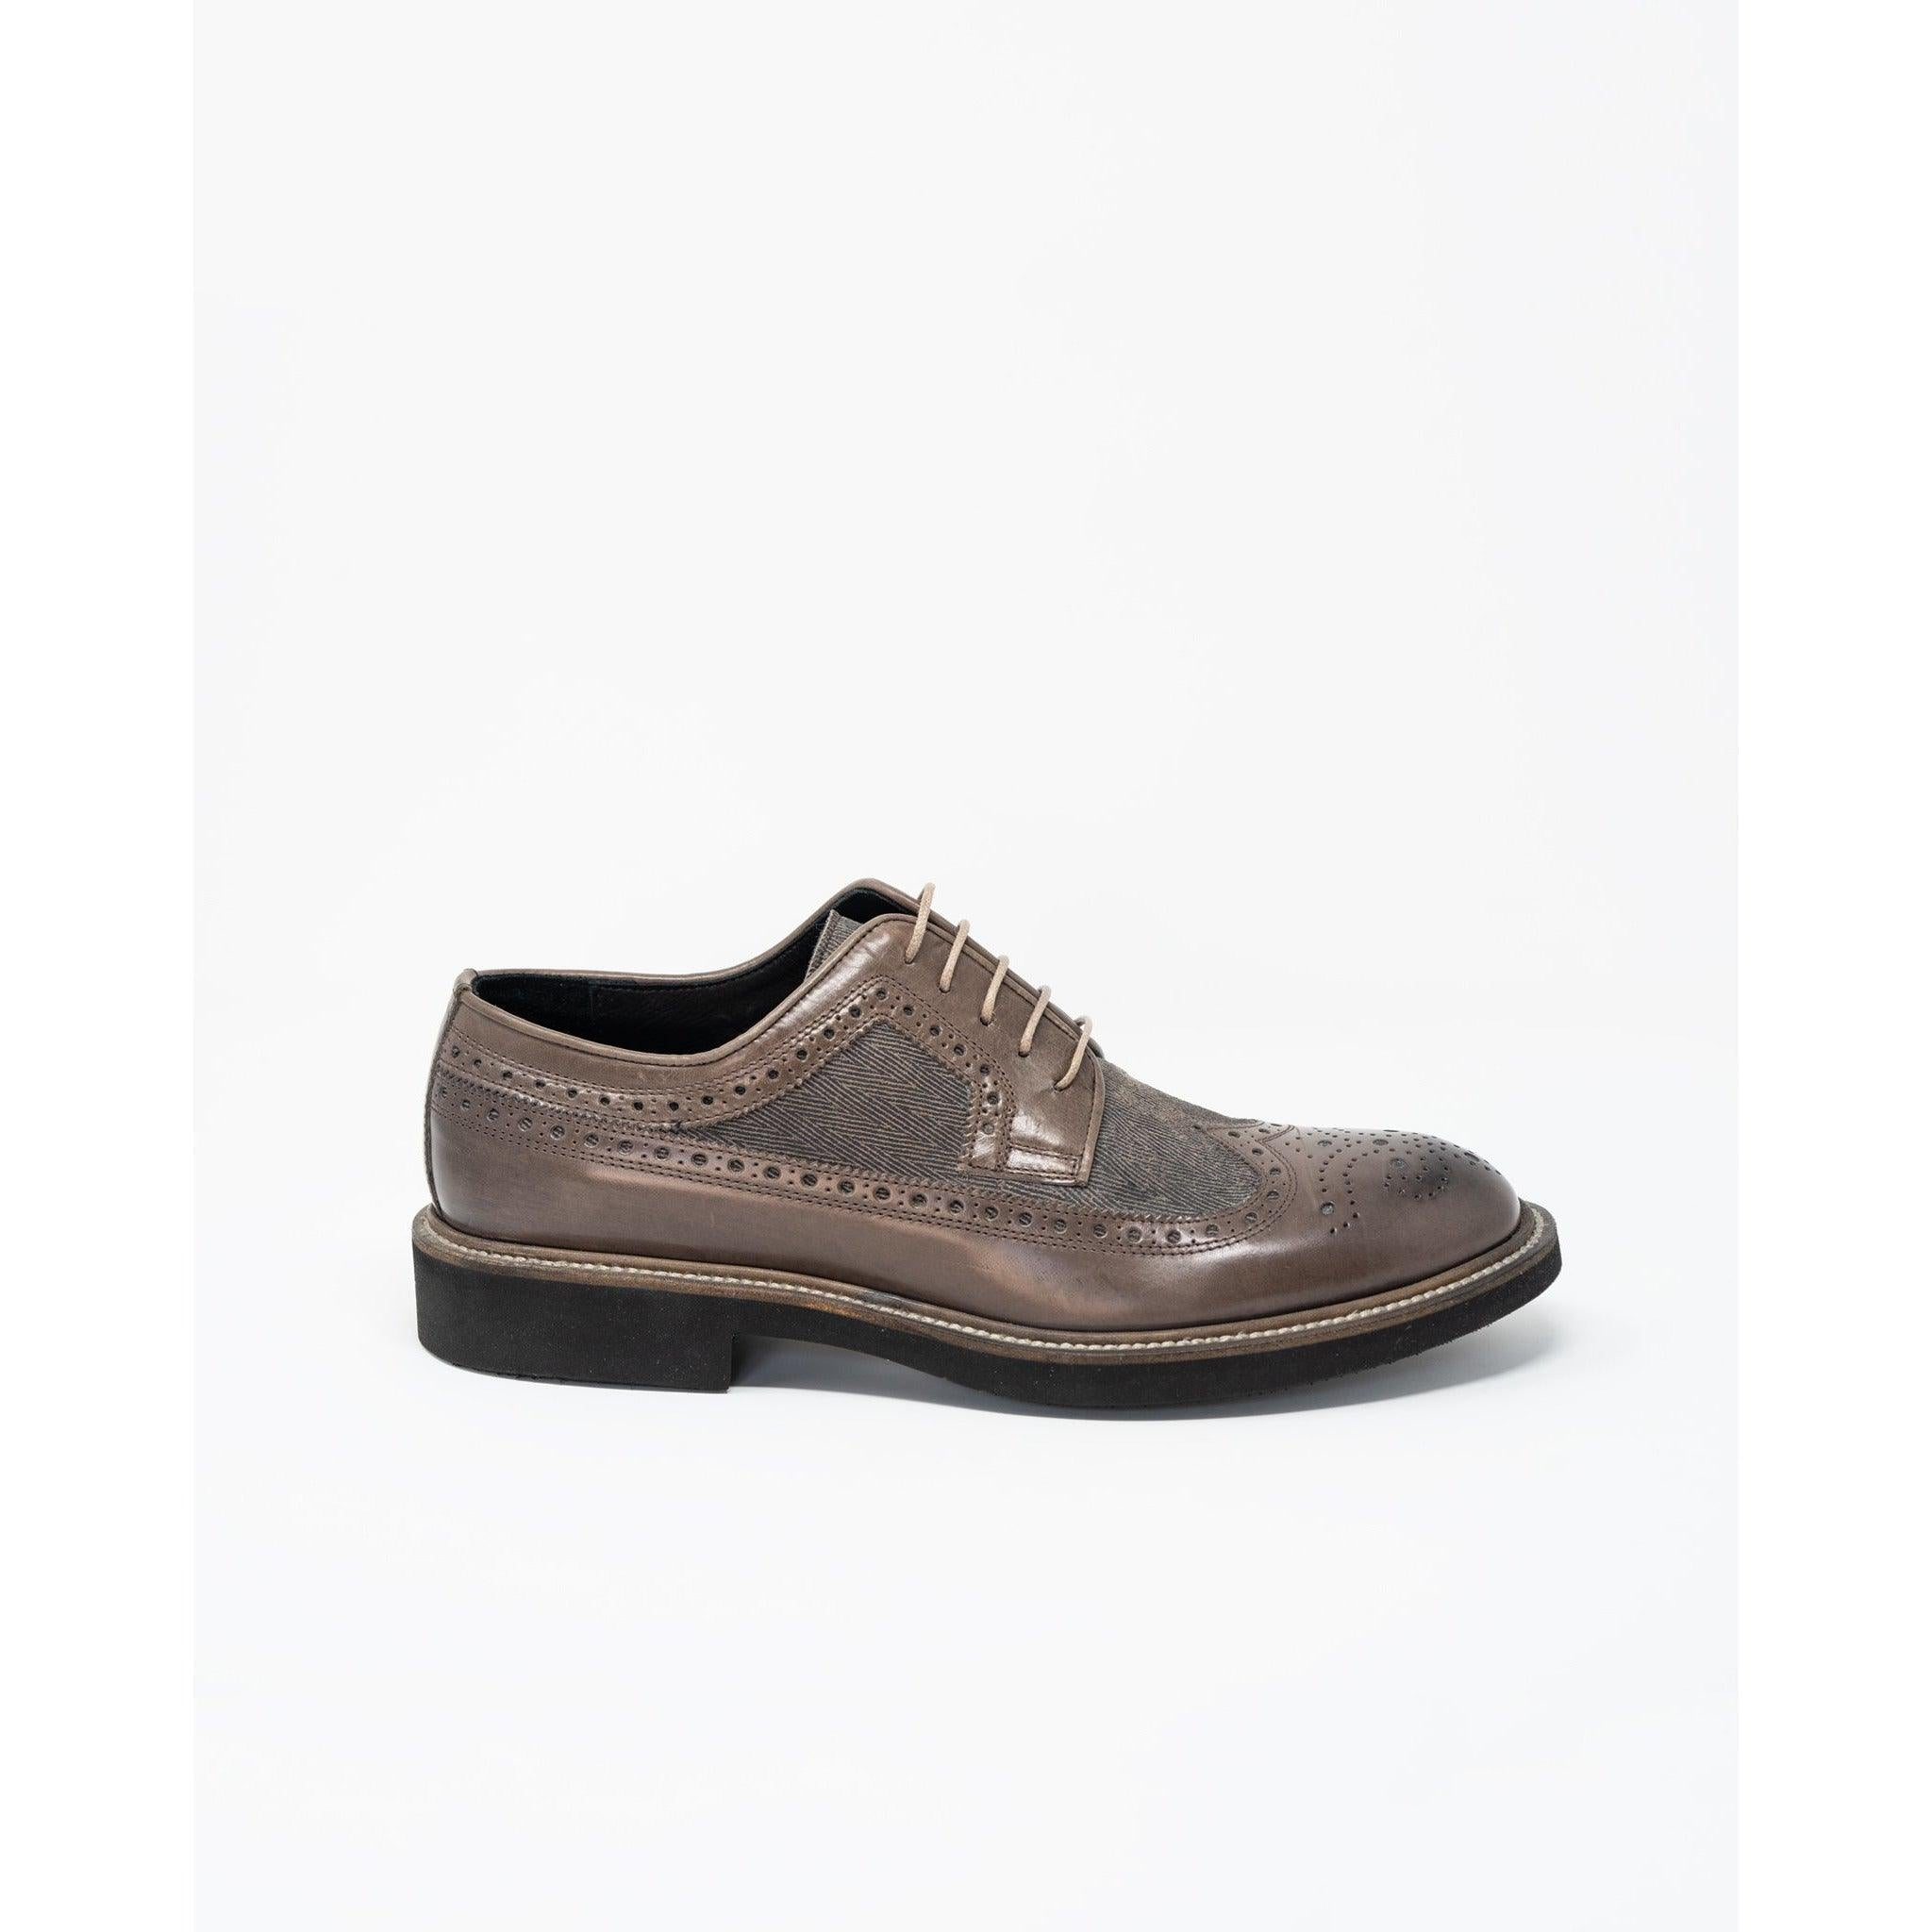 LAN3220 F340 Lace Up Men Shoes - Jennifer Tattanelli Signature Collection